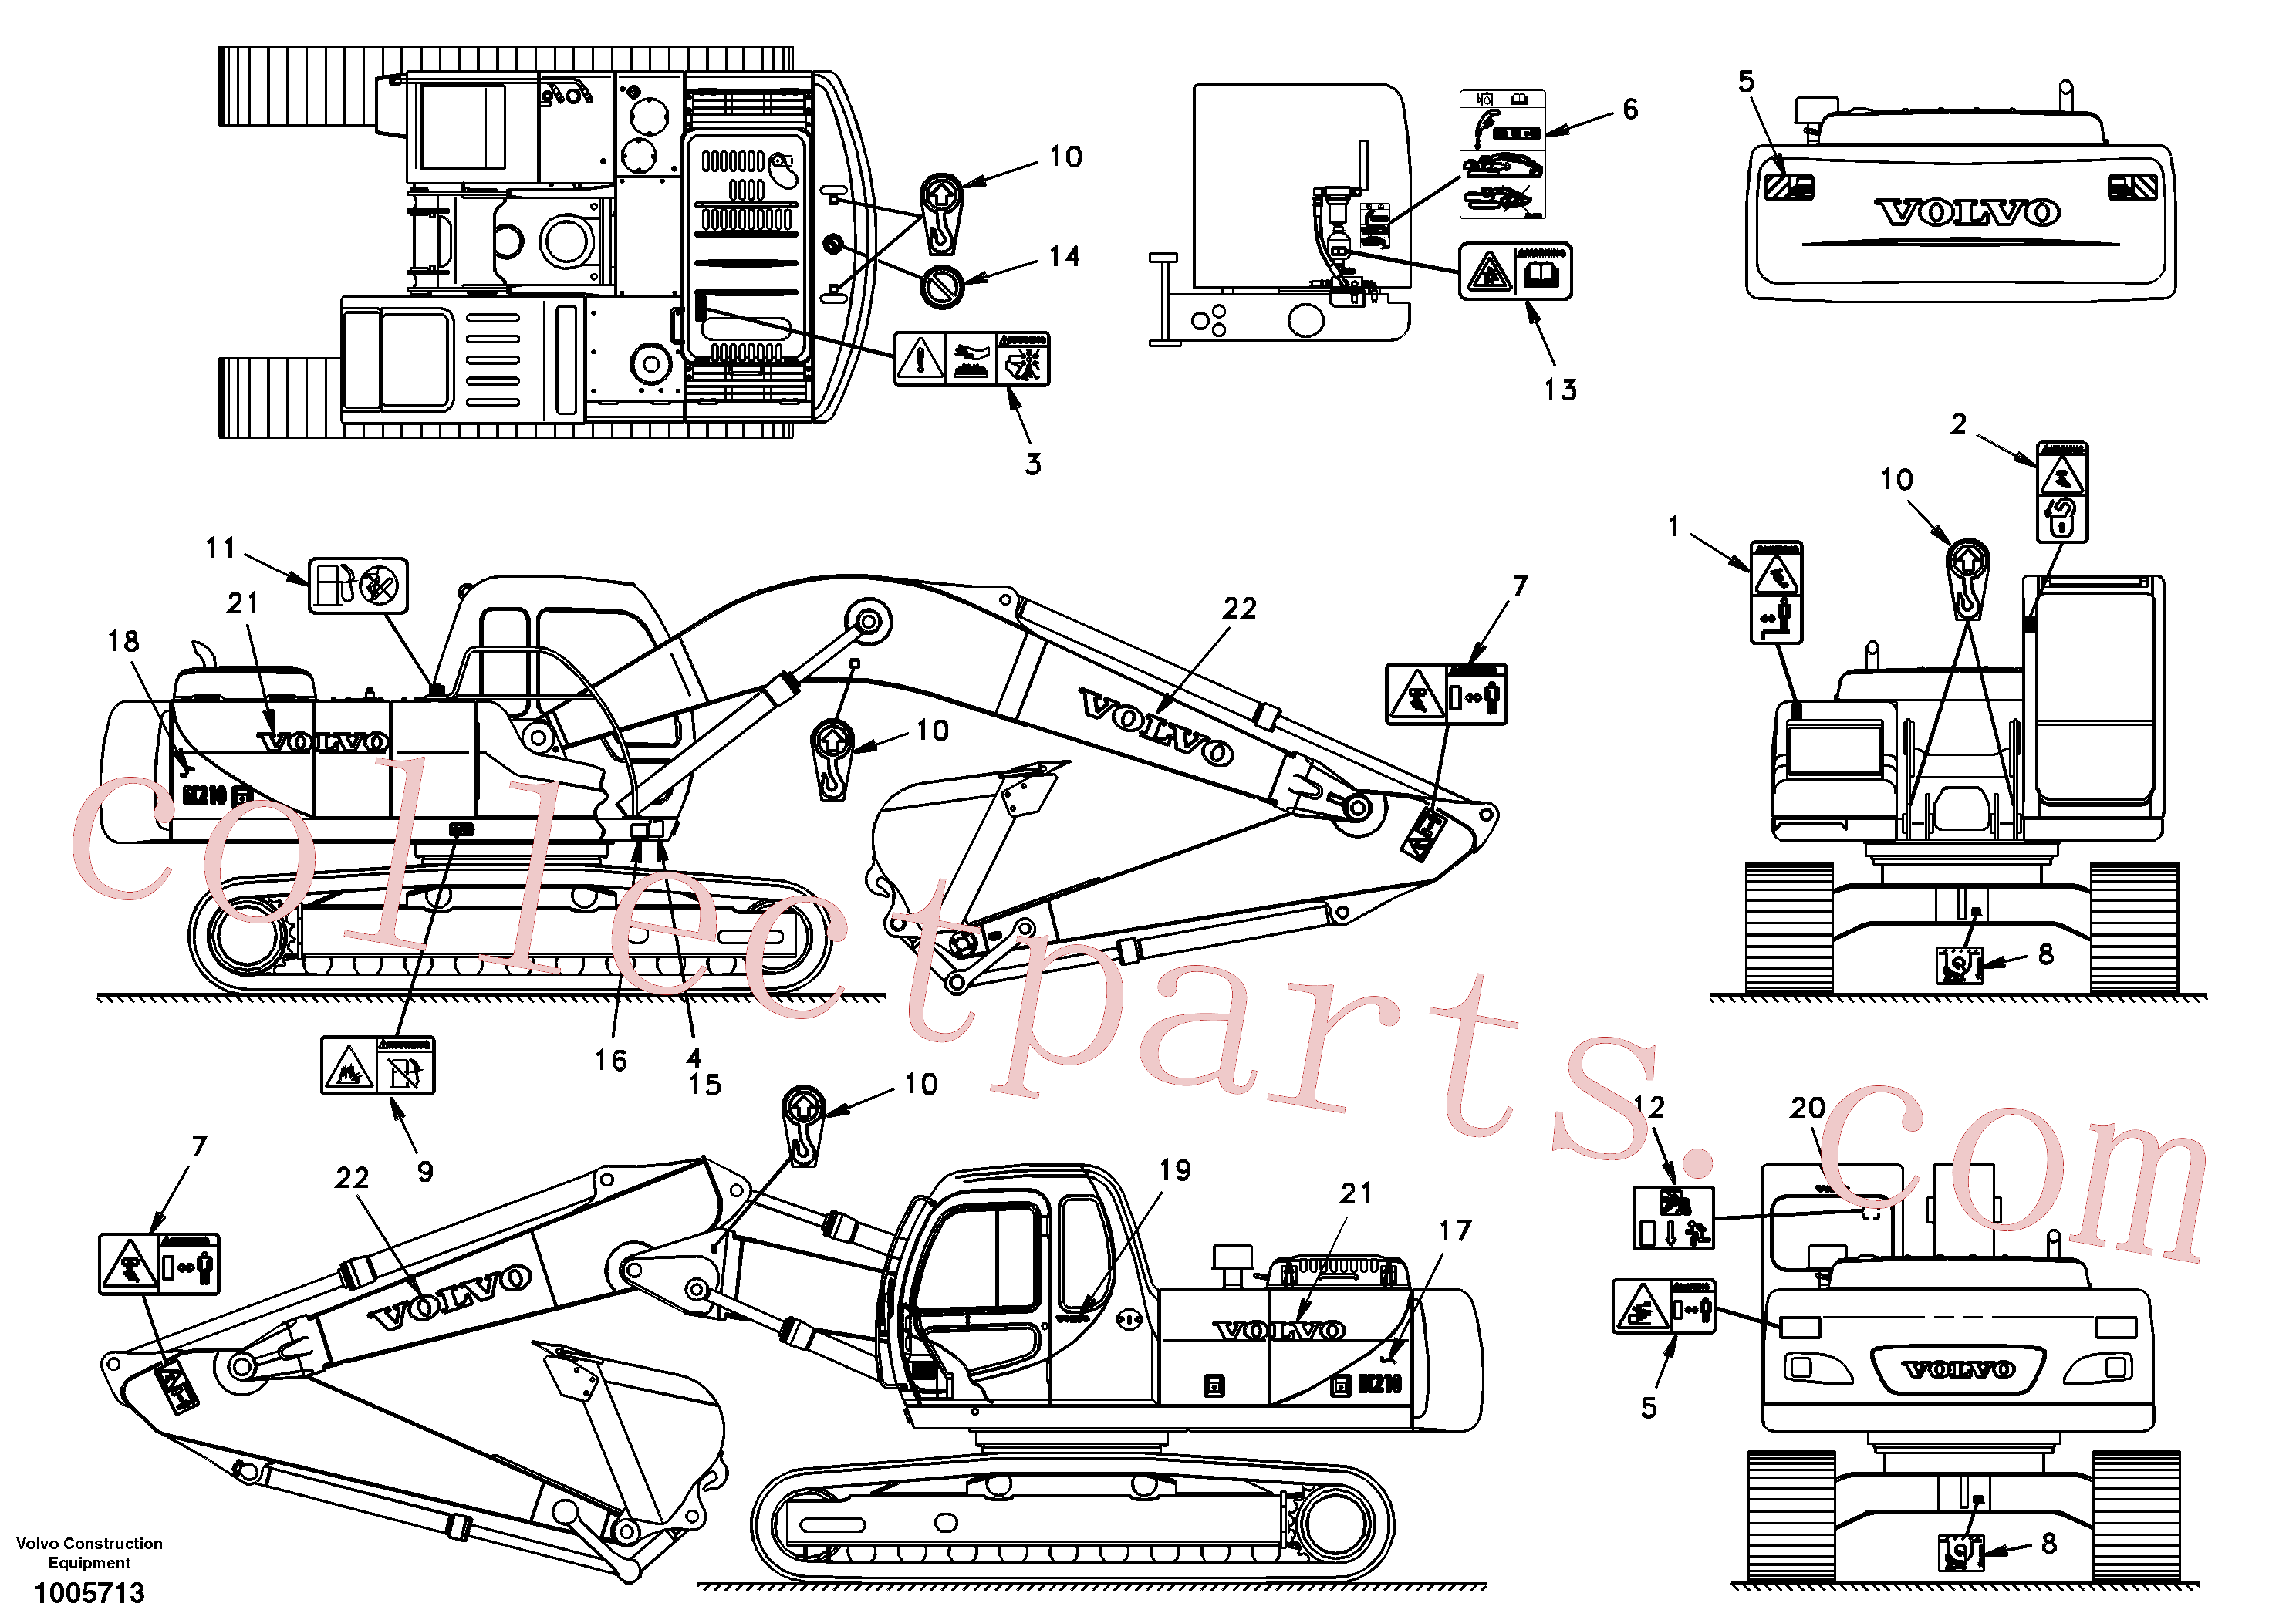 SAP4100152 for Volvo Decal, outer location(1005713 assembly)